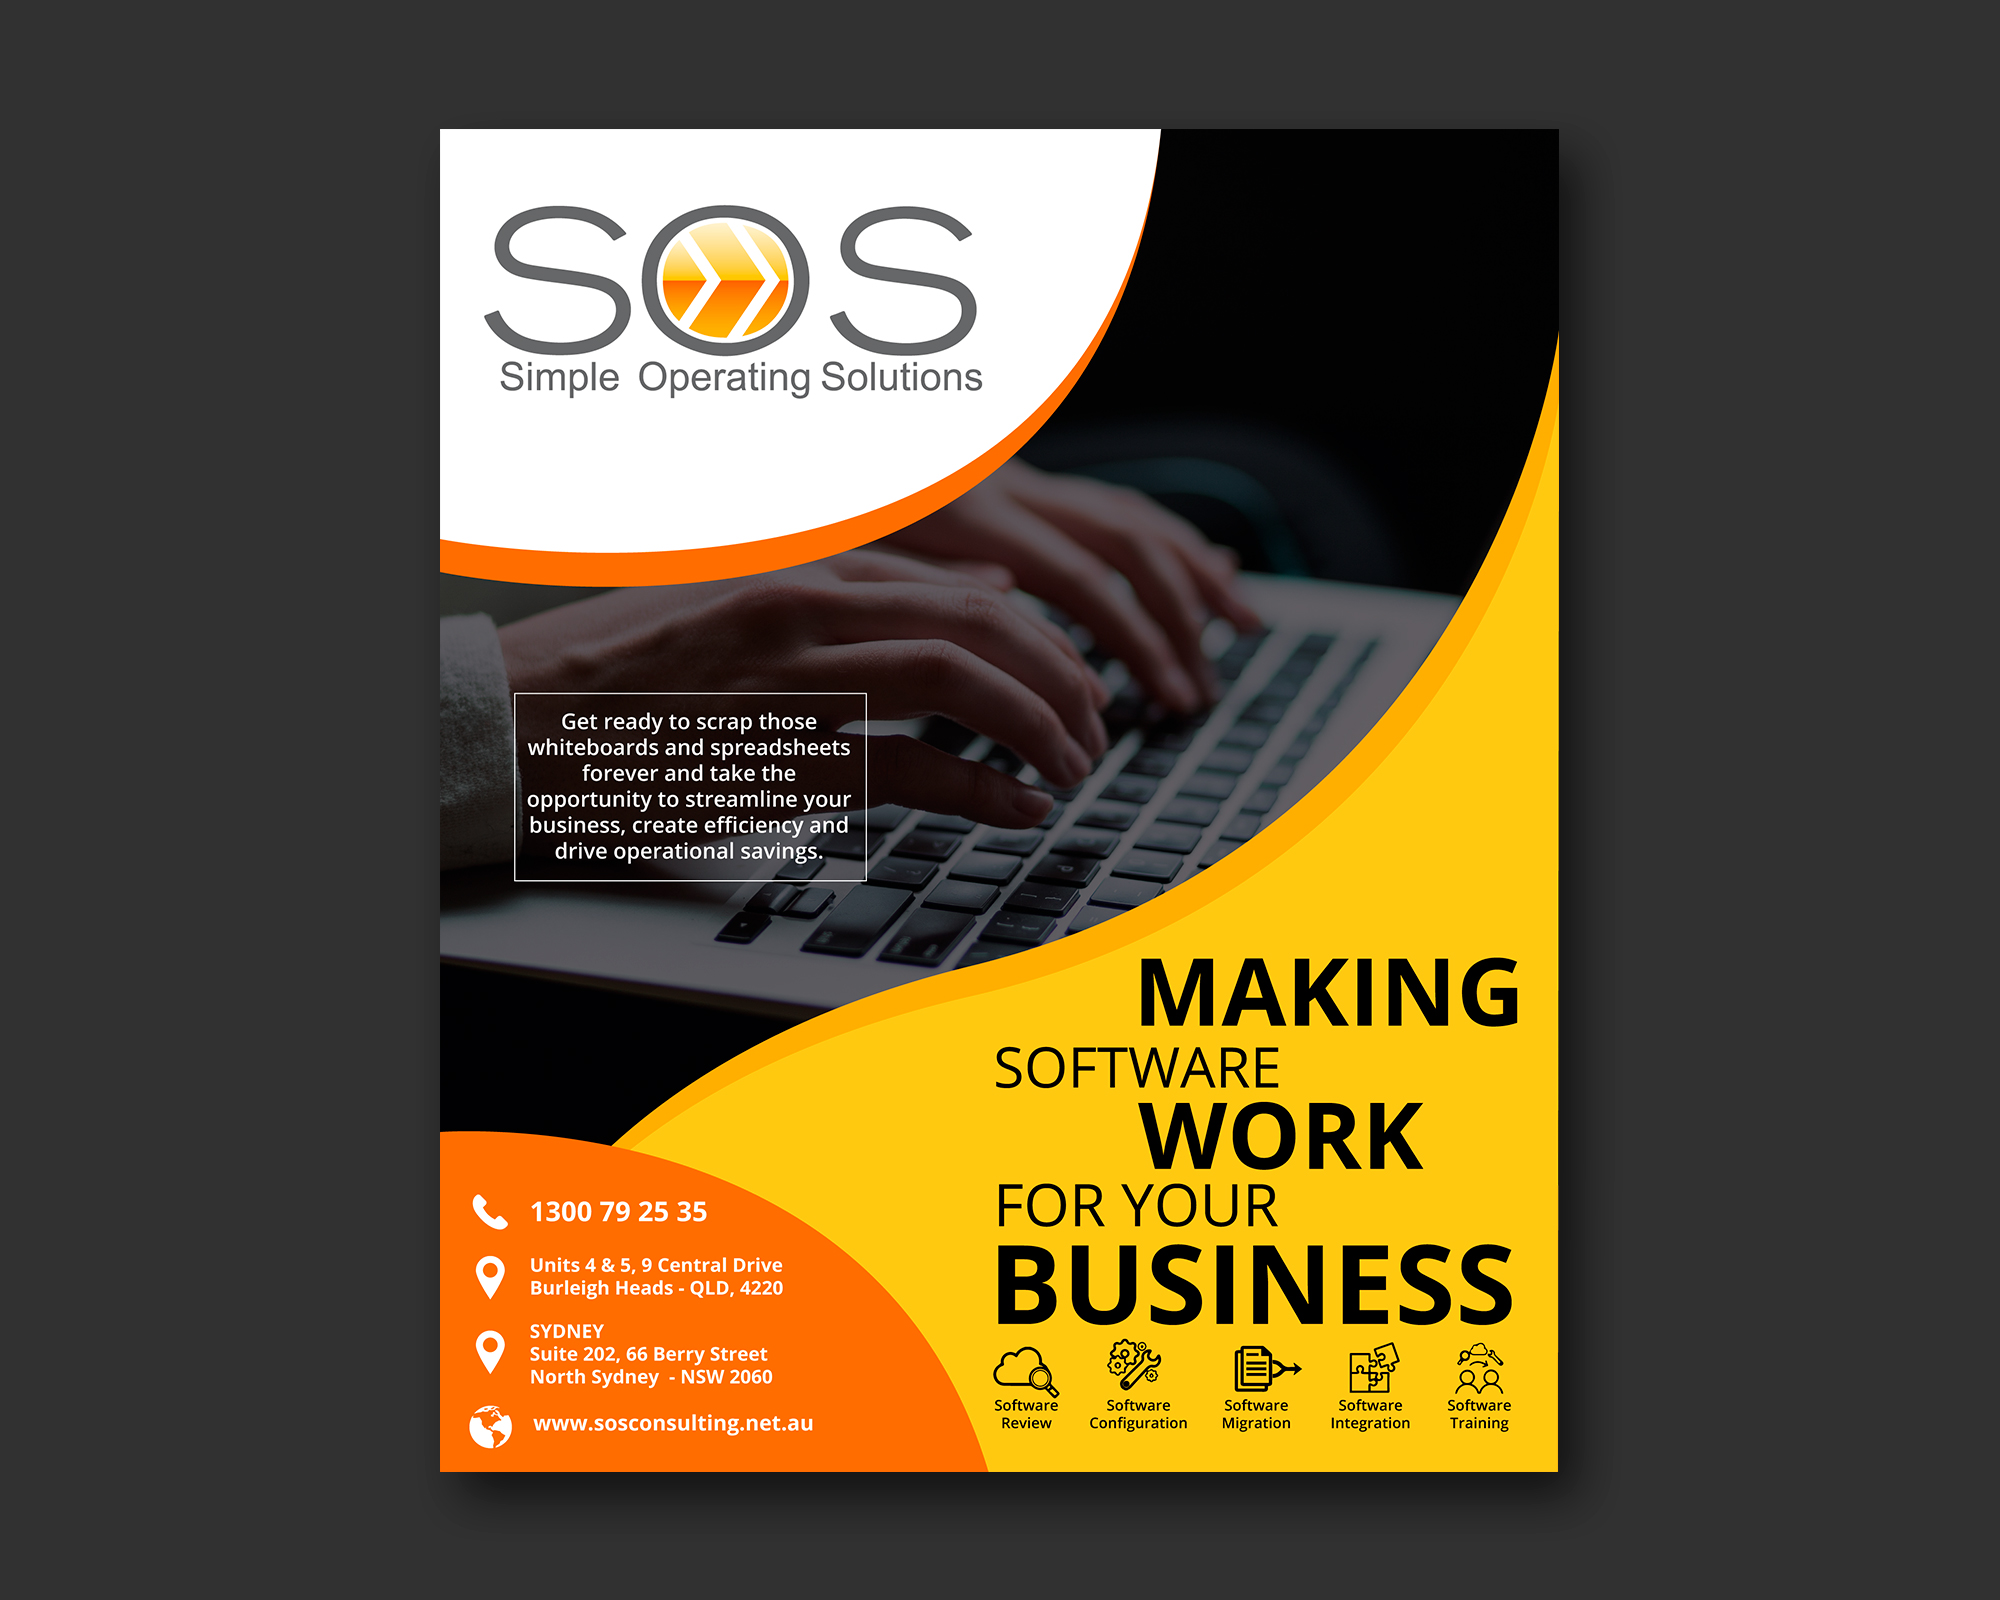 Poster Design For Sos Consulting By Nightmist Design 21730899